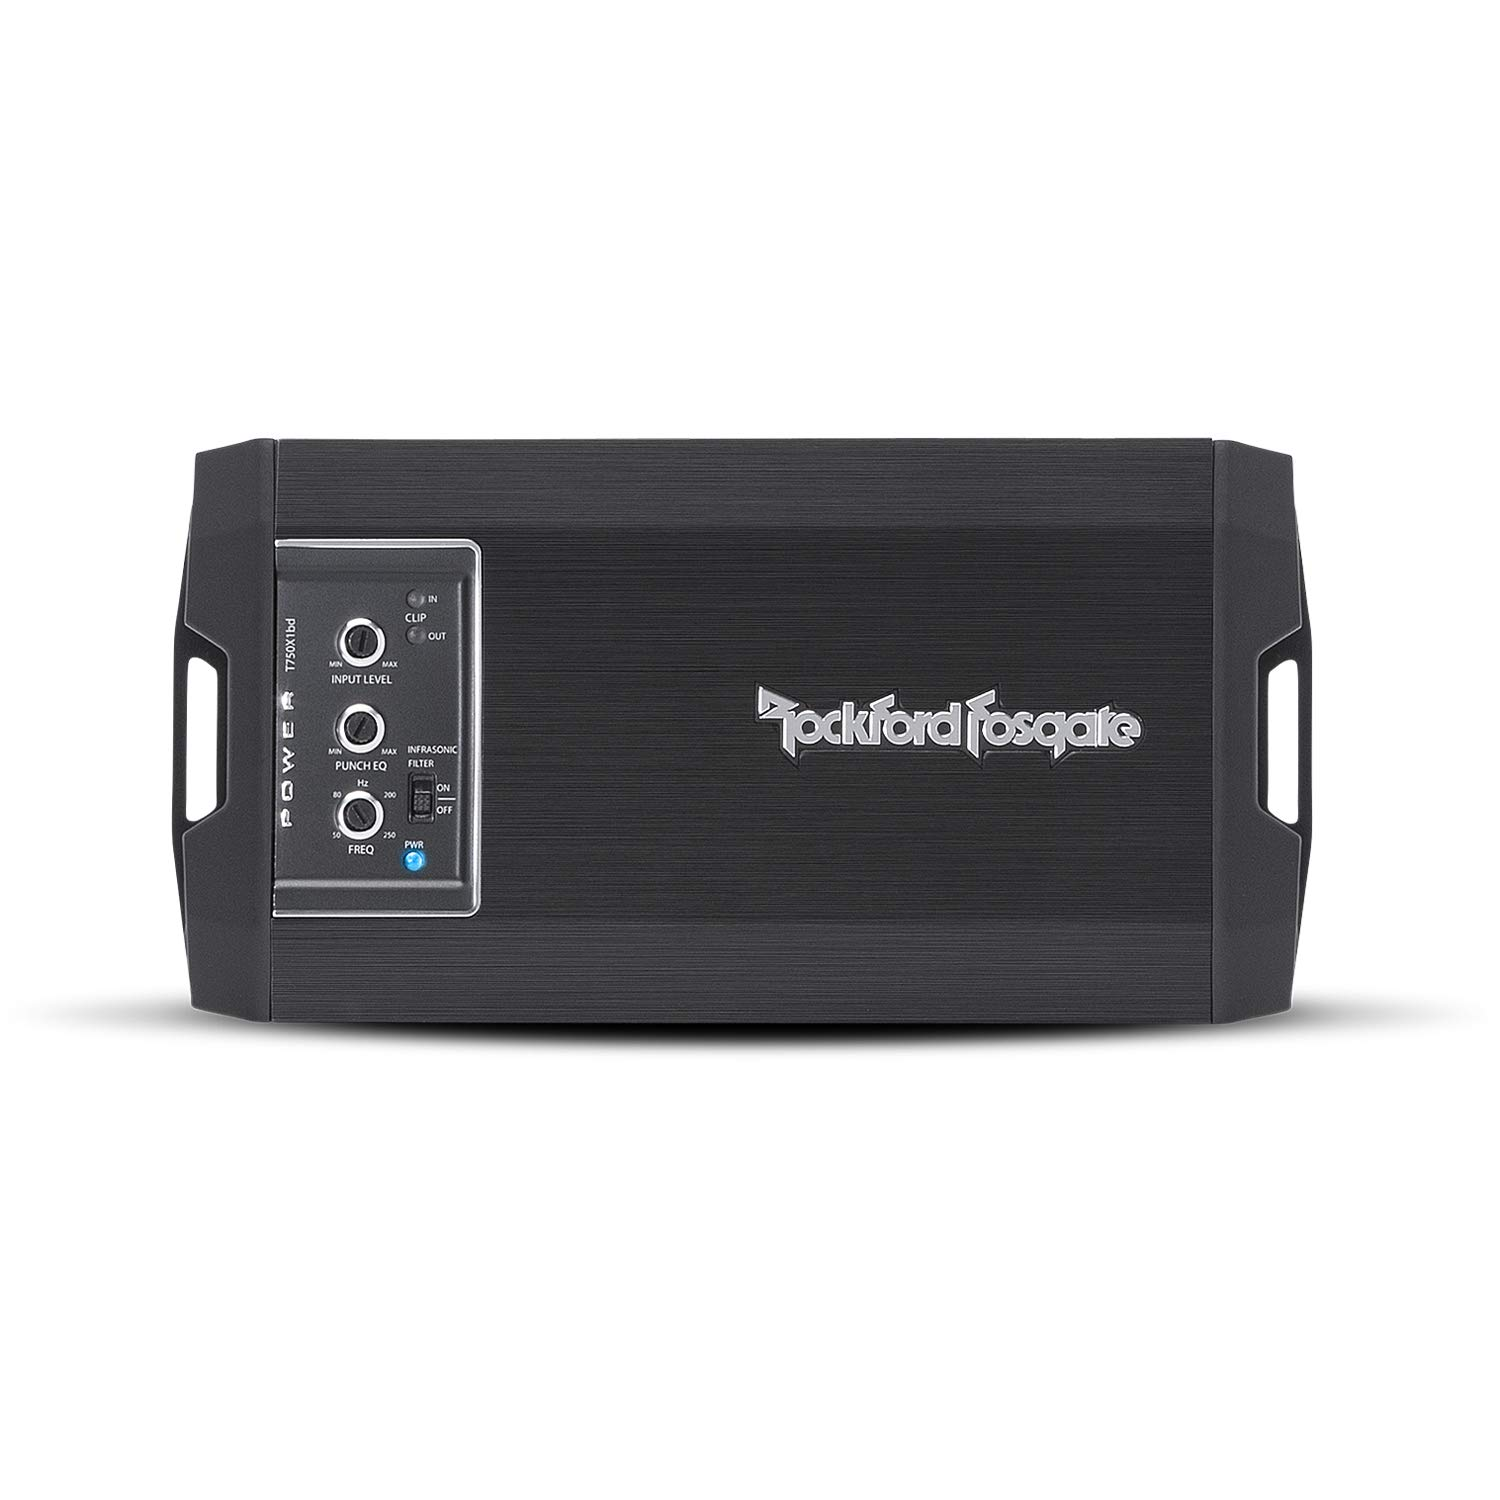 Rockford Fosgate T750X1bd Power 750 Watt Class-bd Mono Amplifier